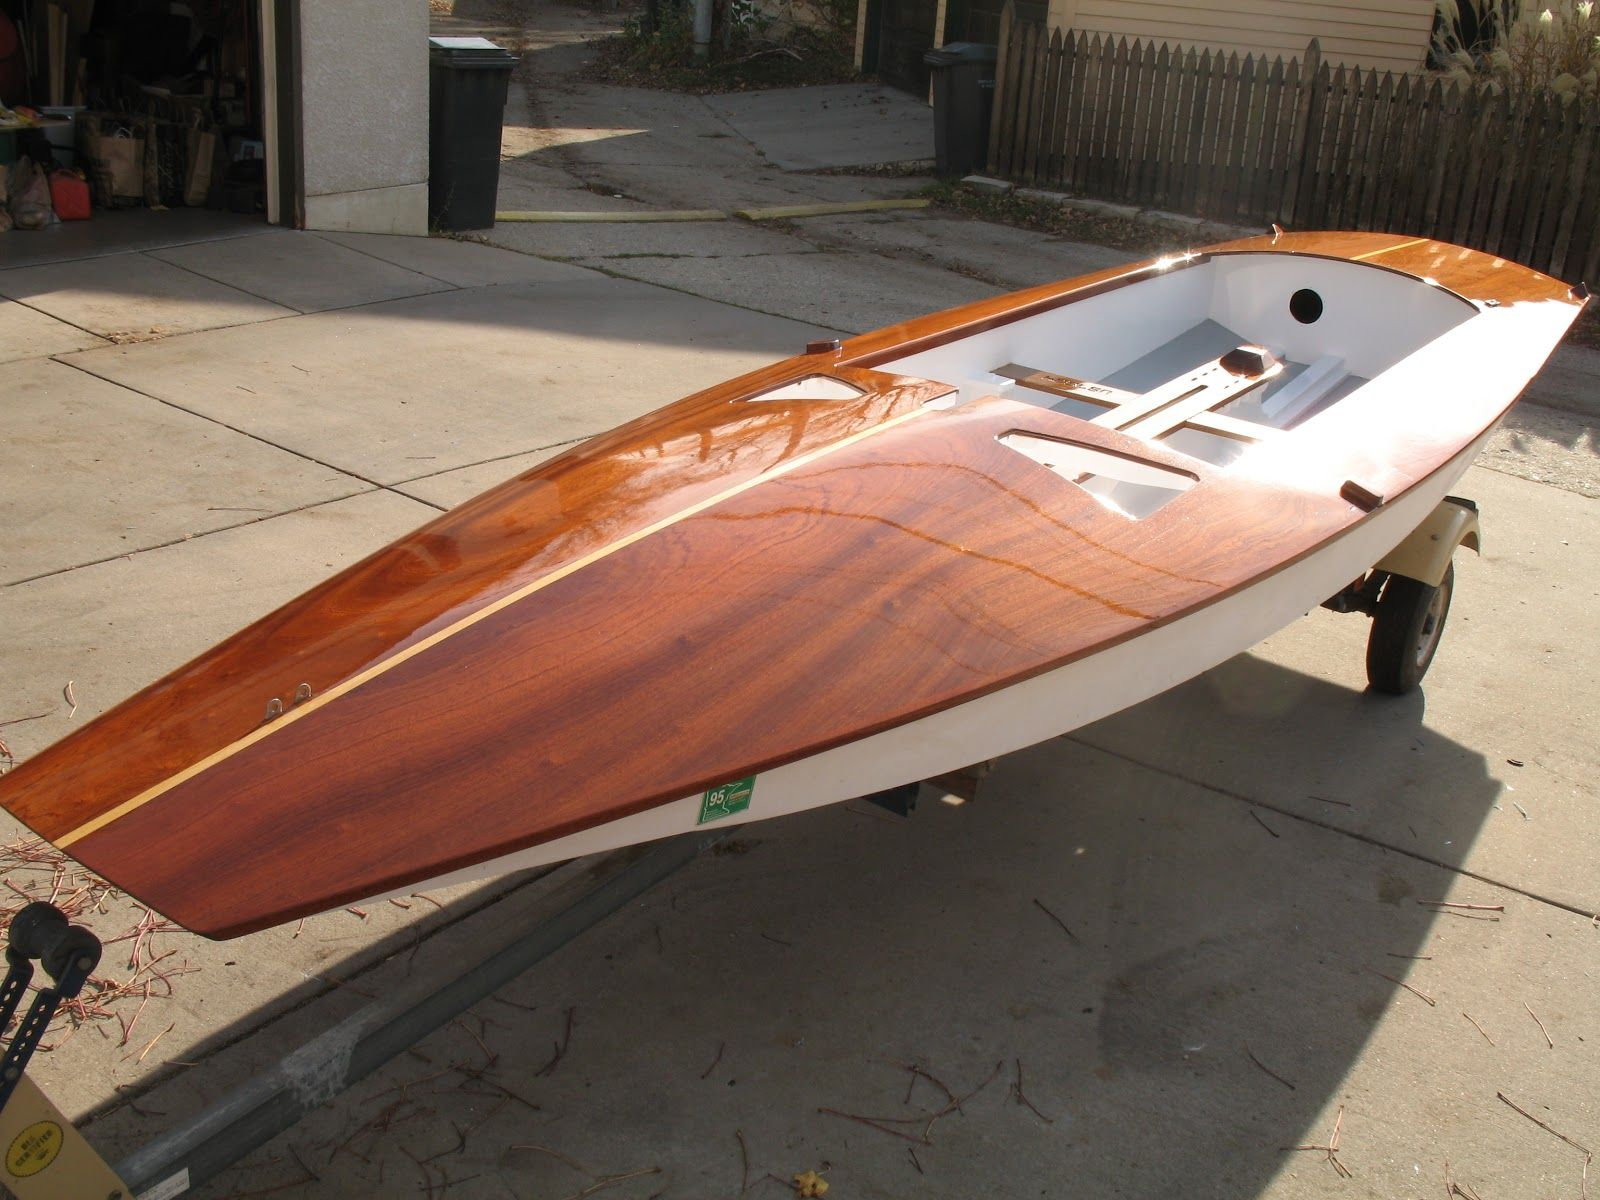 Pin by DB on Fireball - wood | Sailing dinghy, Dinghy, Sailing